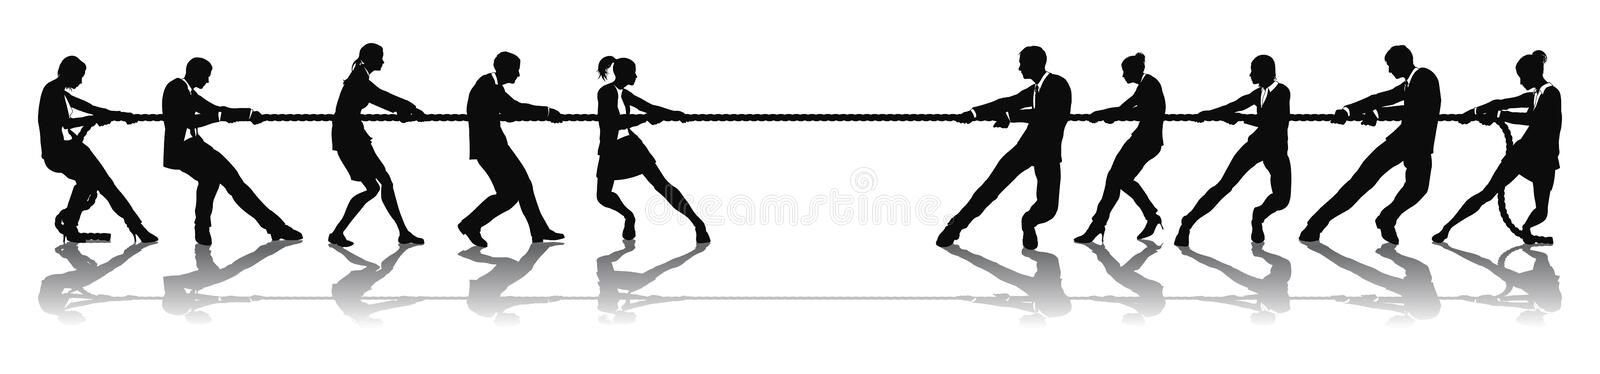 Business people tug of war competition stock illustration